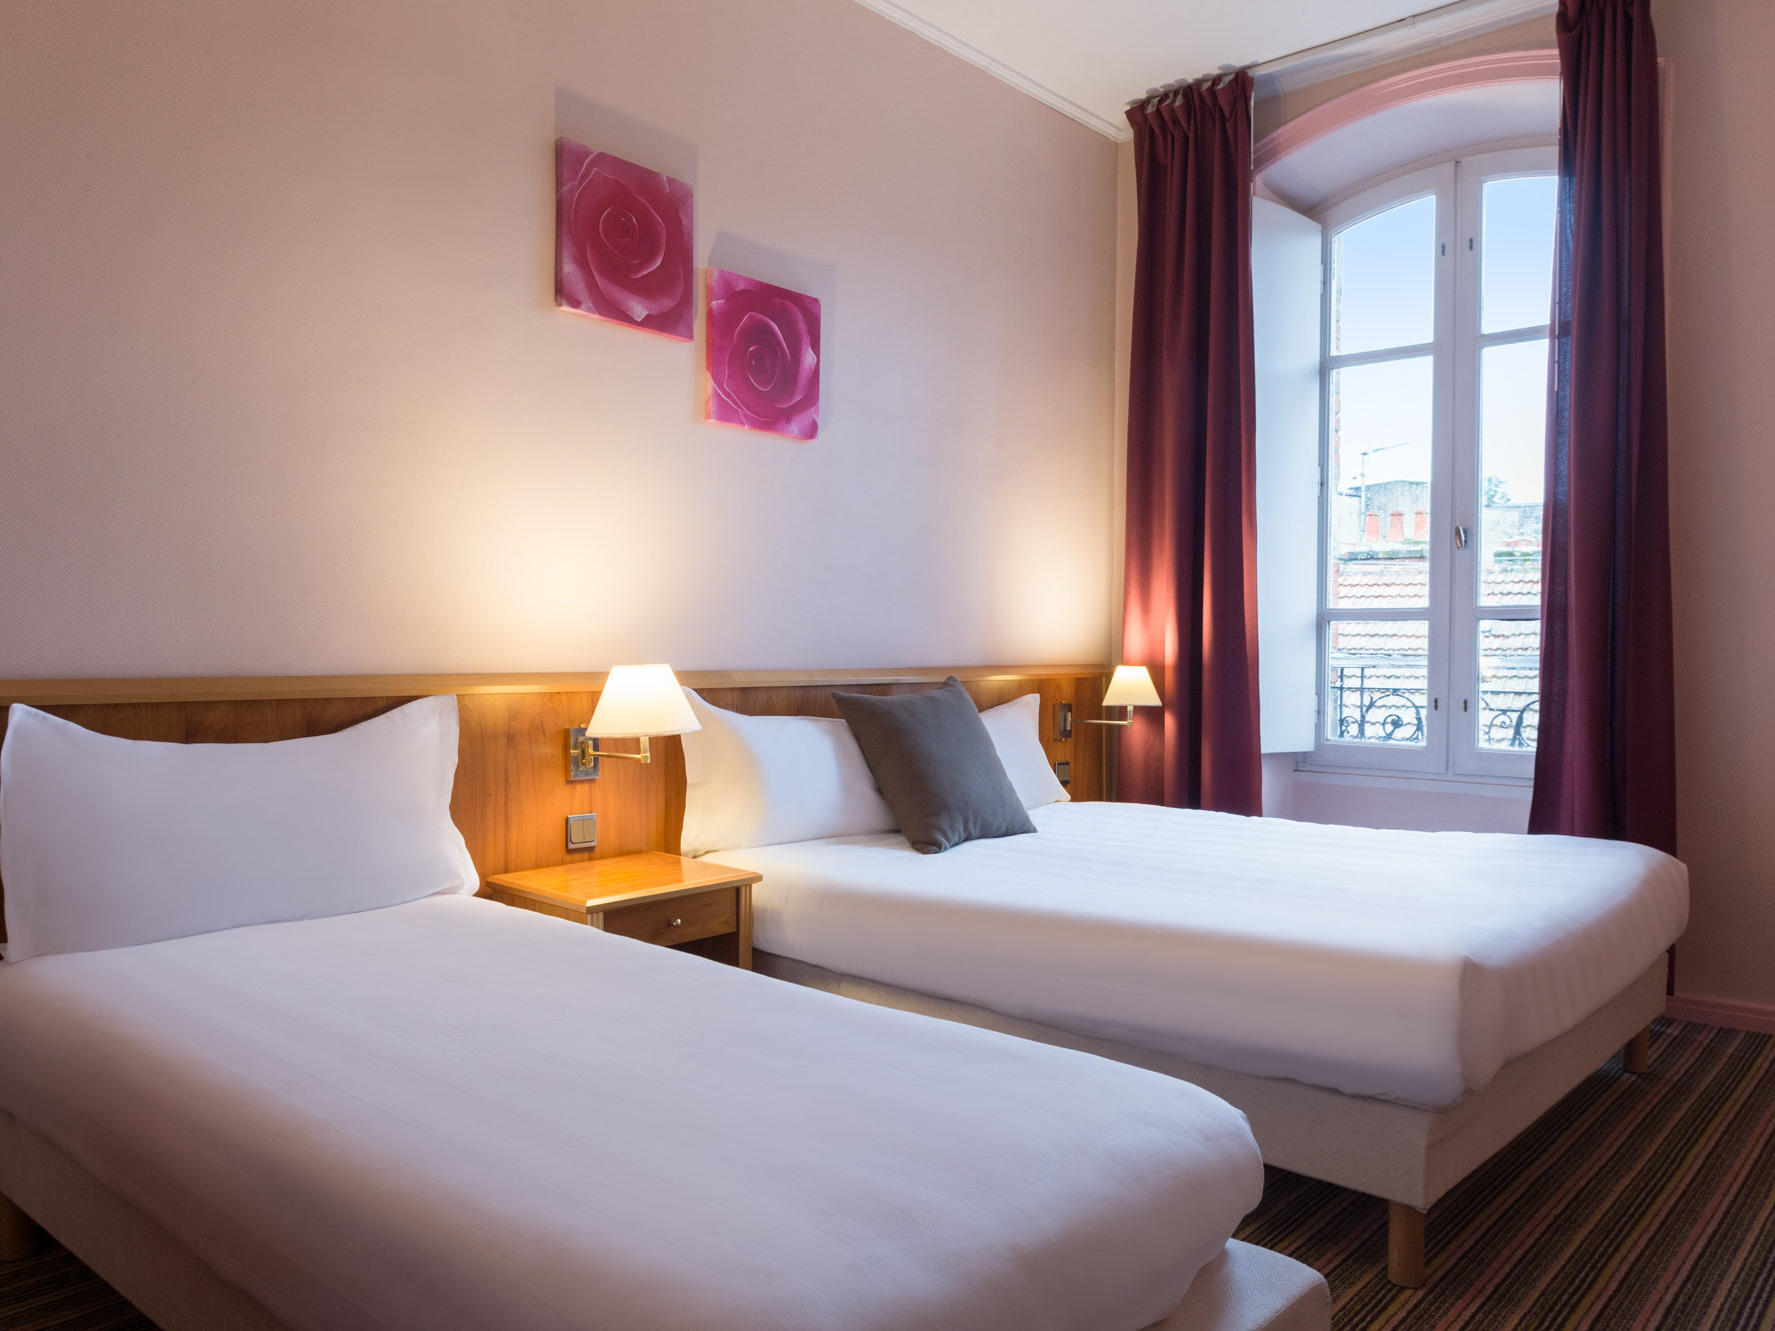 The Superior Family Room at the Grand Hôtel Saint-Pierre with one large double bed and one single bed